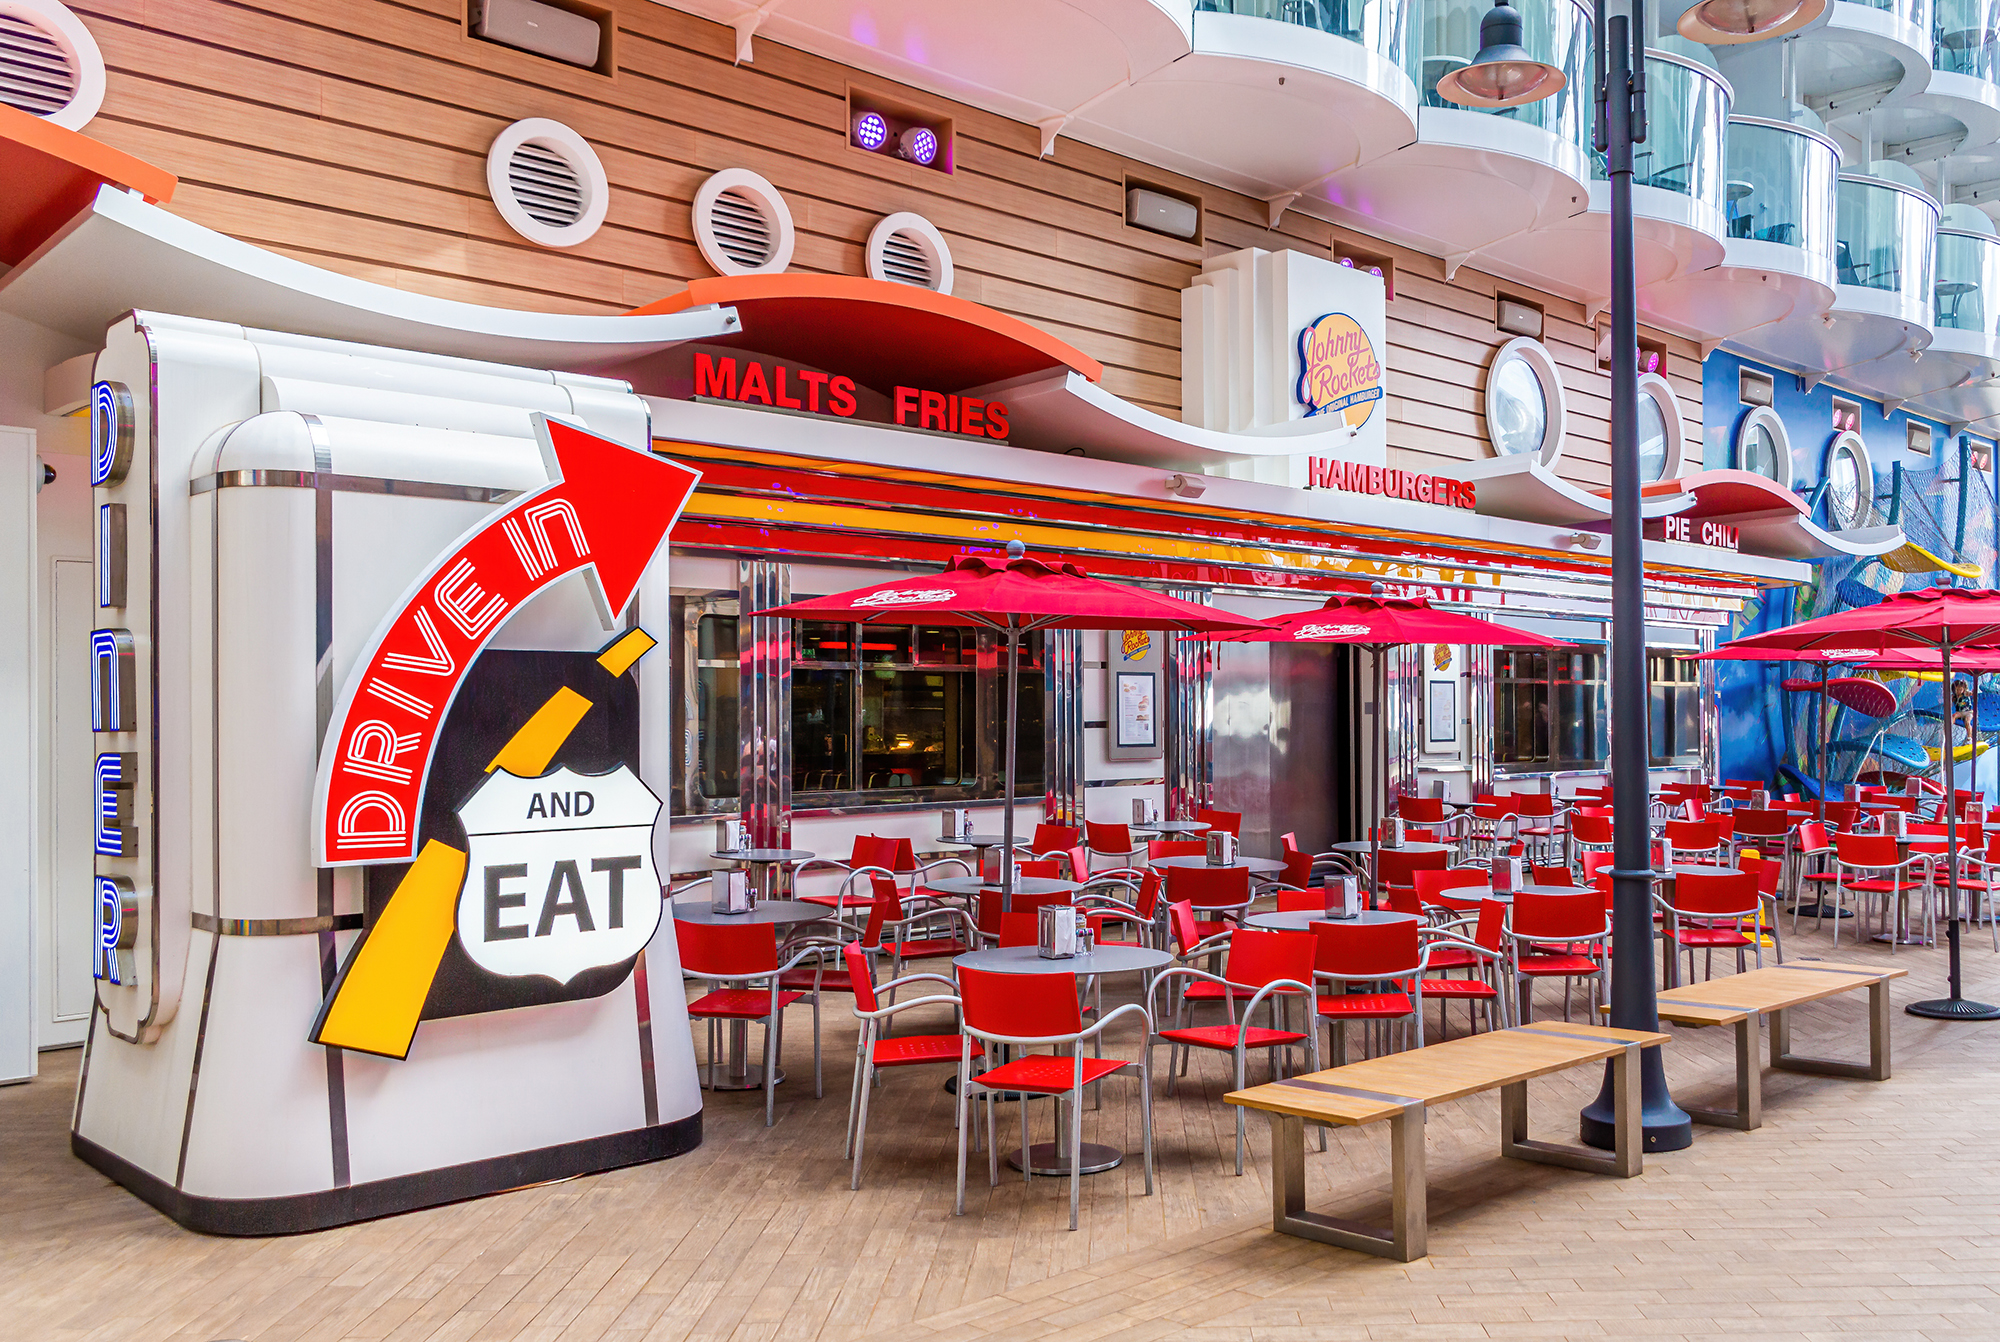 Burger merger: Fatburger owner is buying Johnny Rockets for $25 million